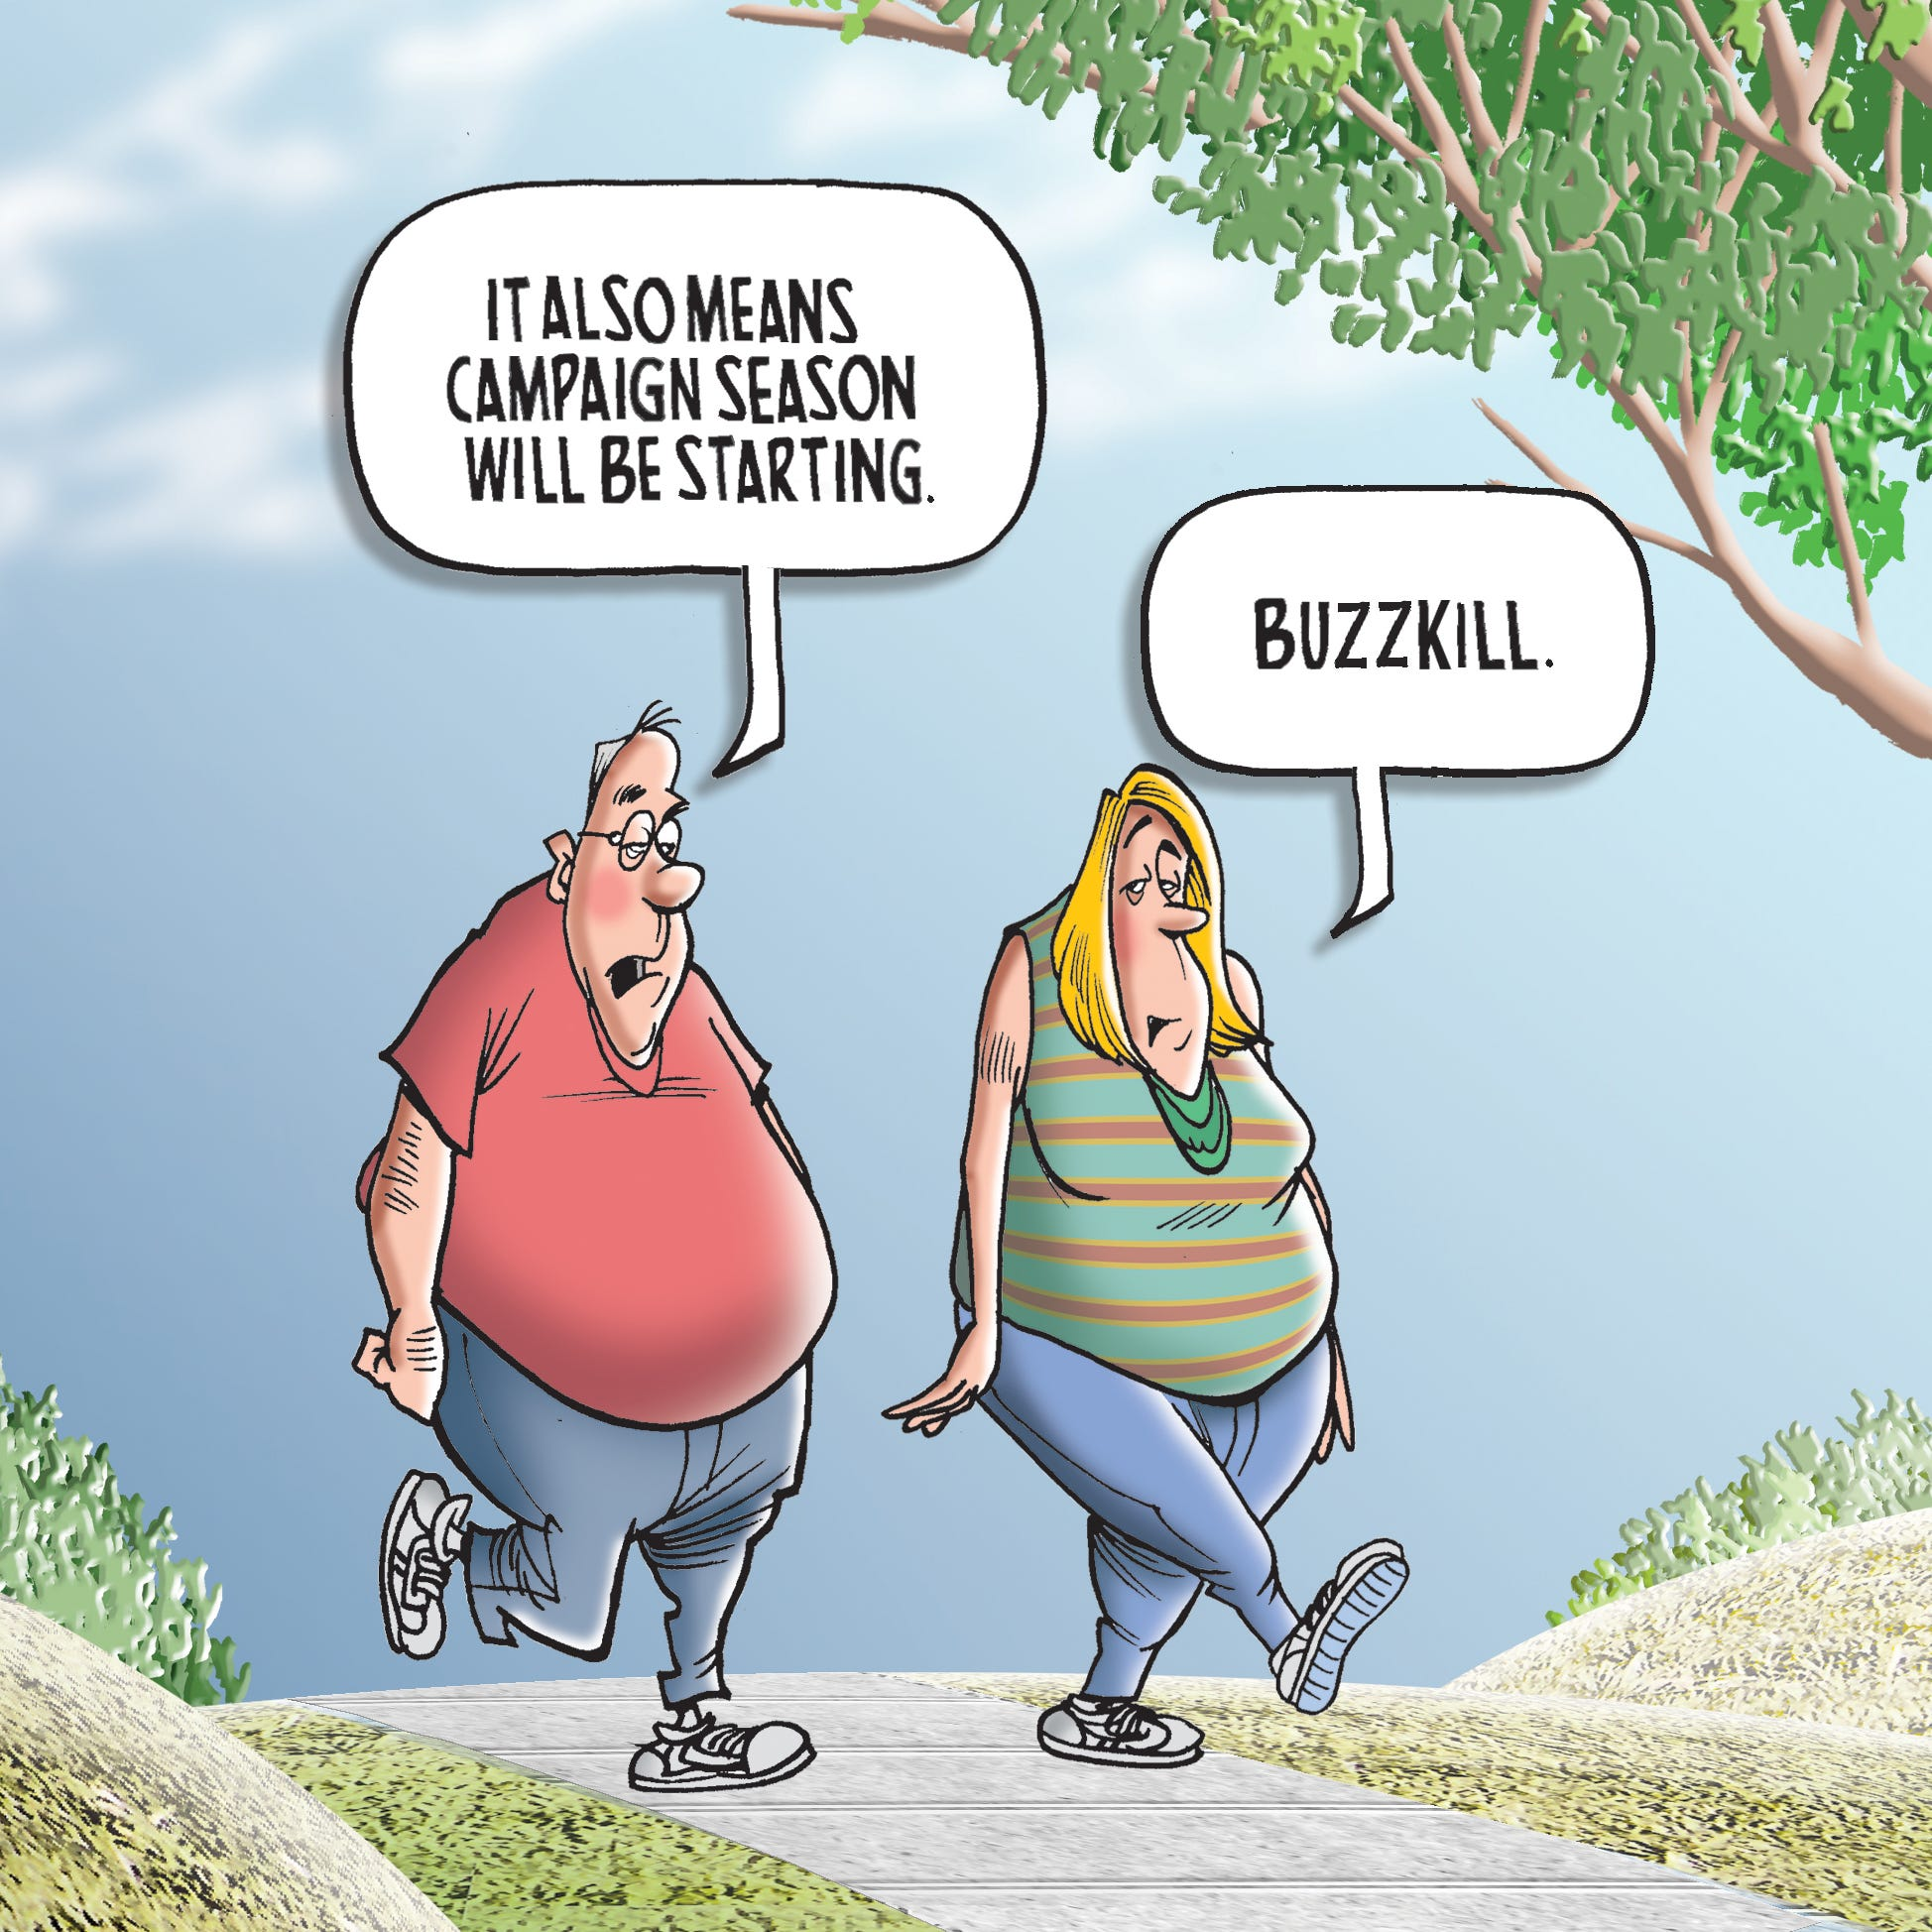 First published for Labor Day 2014. The cartoonist's homepage, freep.com/mikethompson